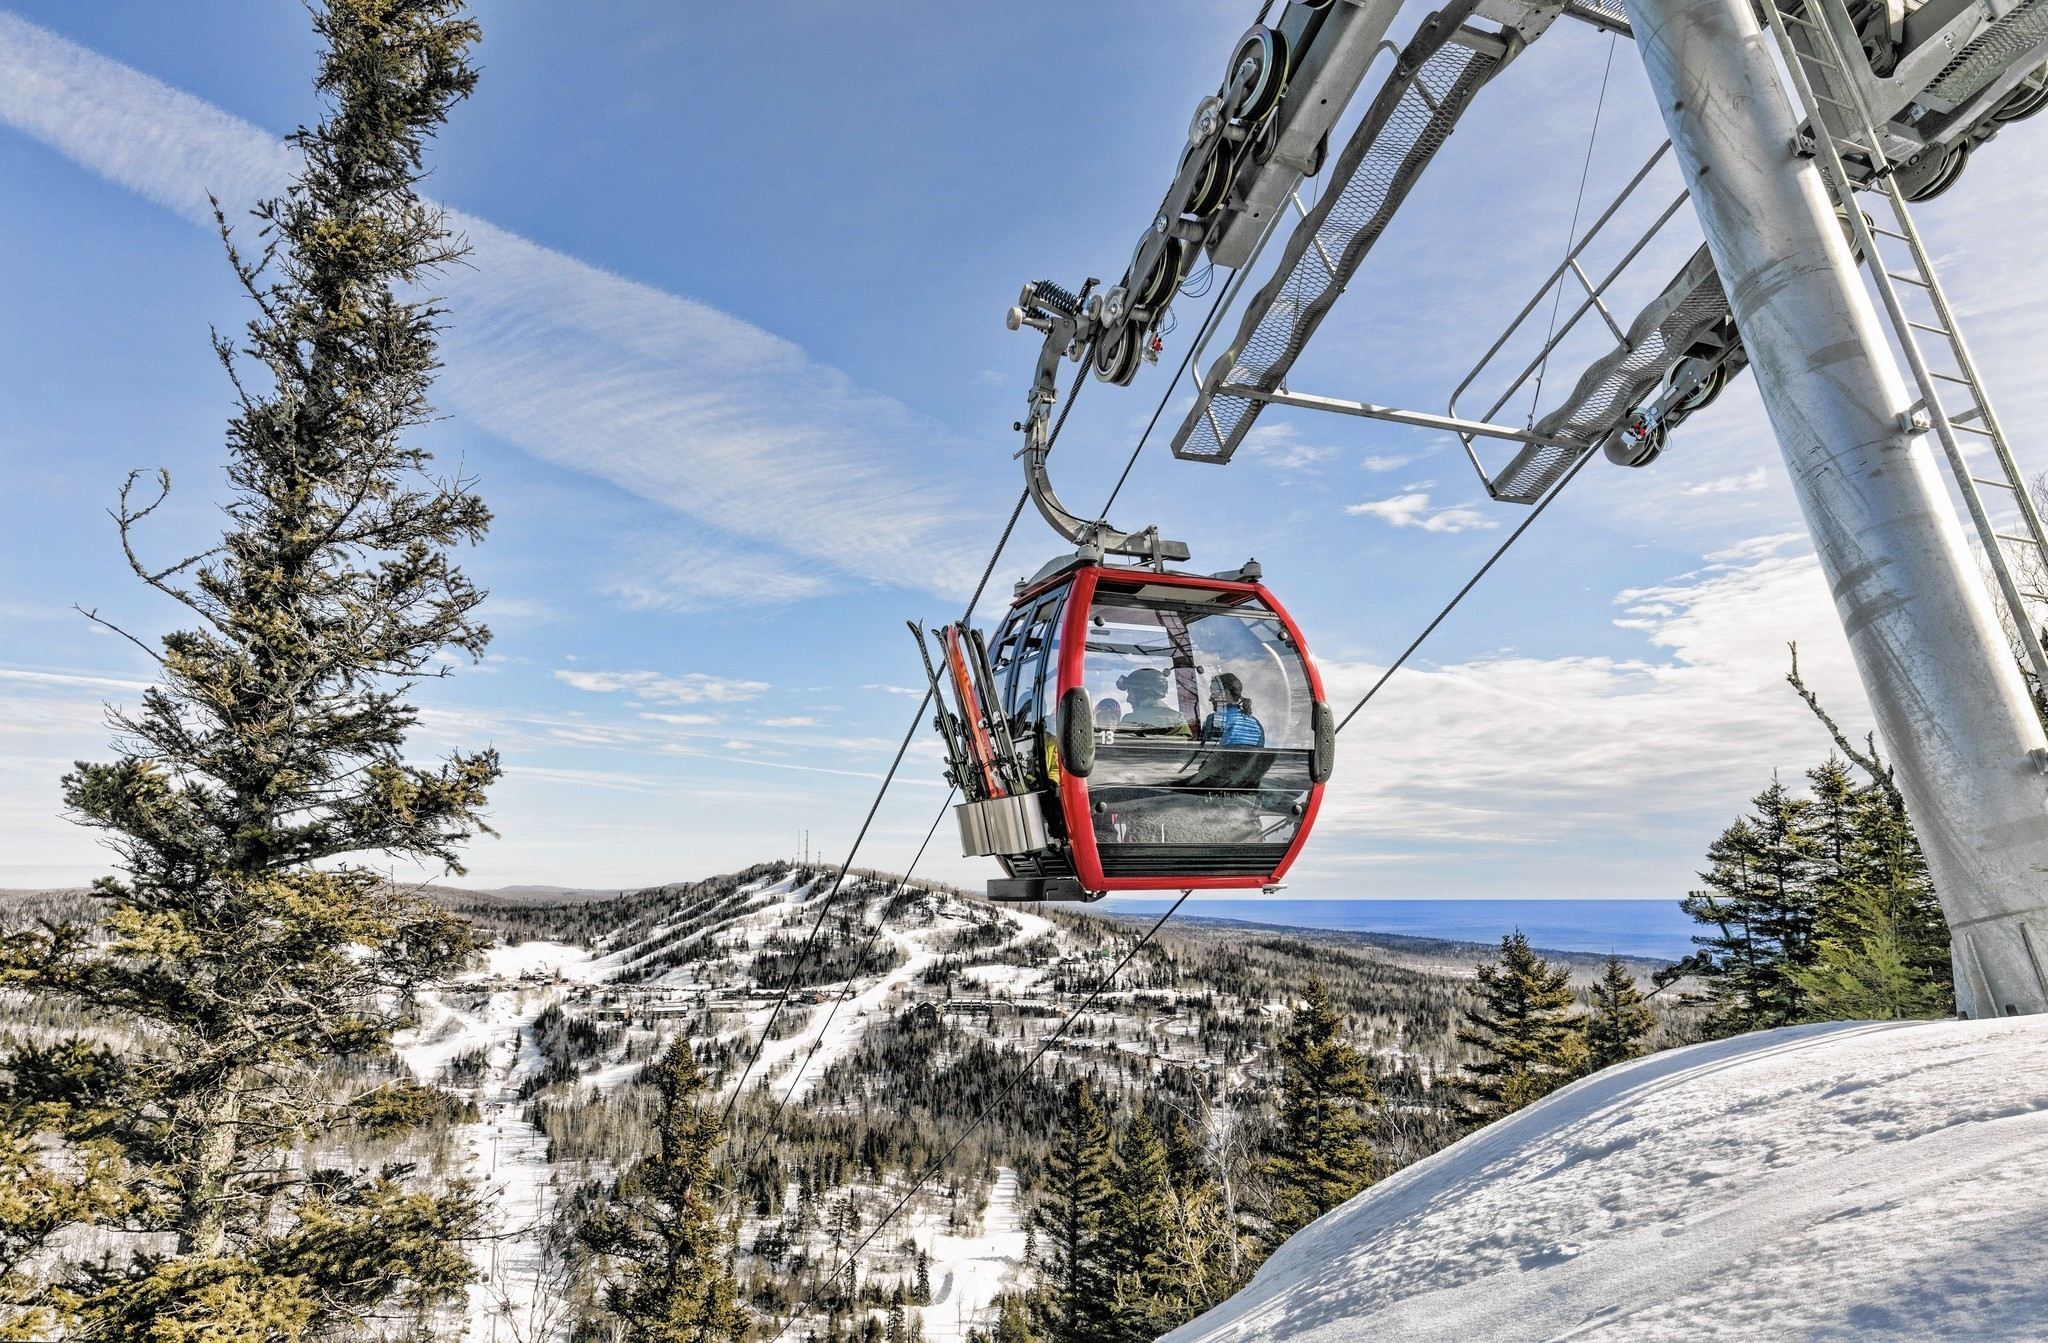 skiing lutsen, the midwest answer to aspen - chicago tribune